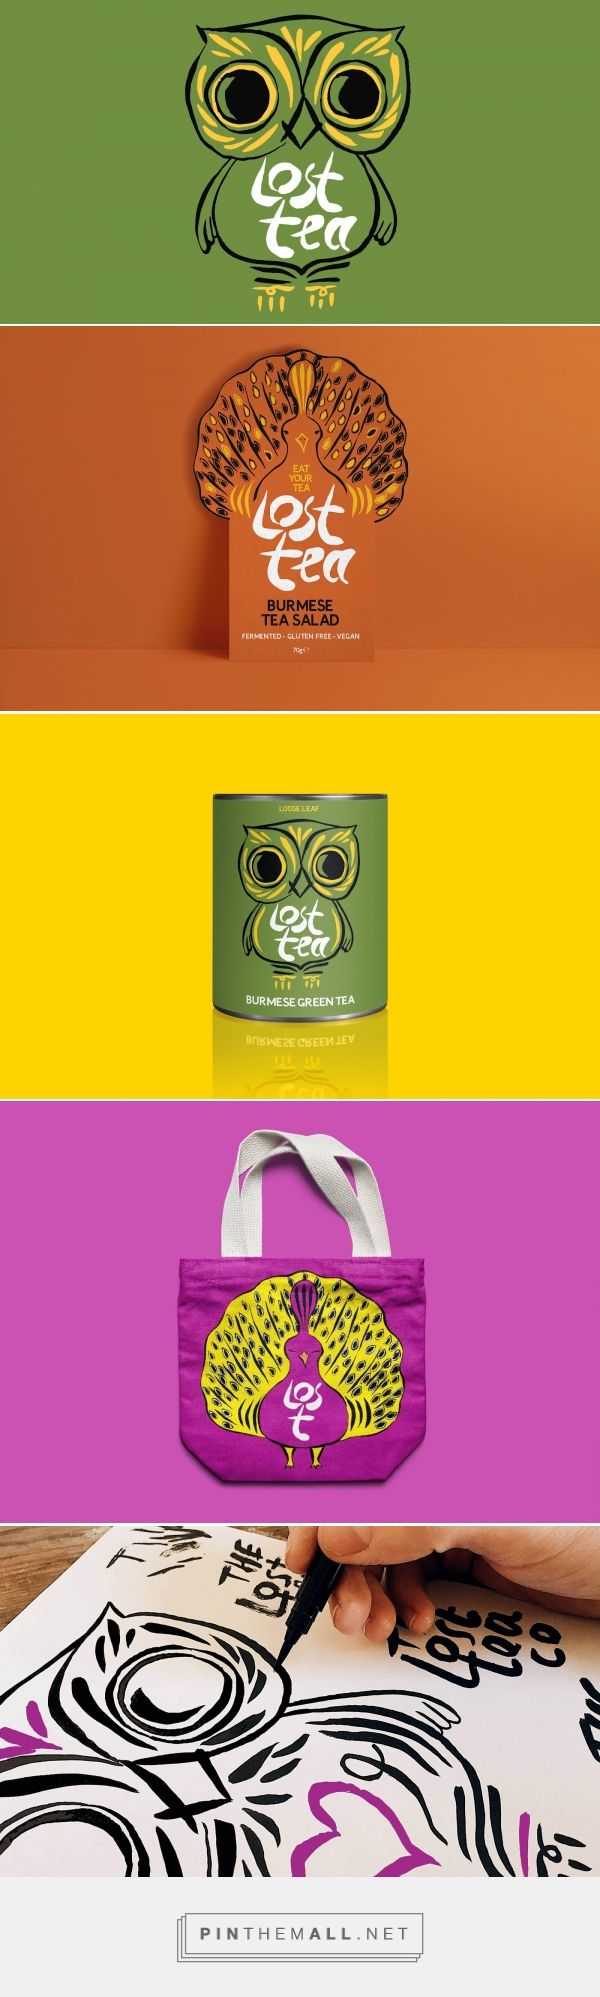 The Lost Tea Company packaging design by Design by country - http://www.packagingoftheworld.com/2017/06/the-lost-tea-company.html